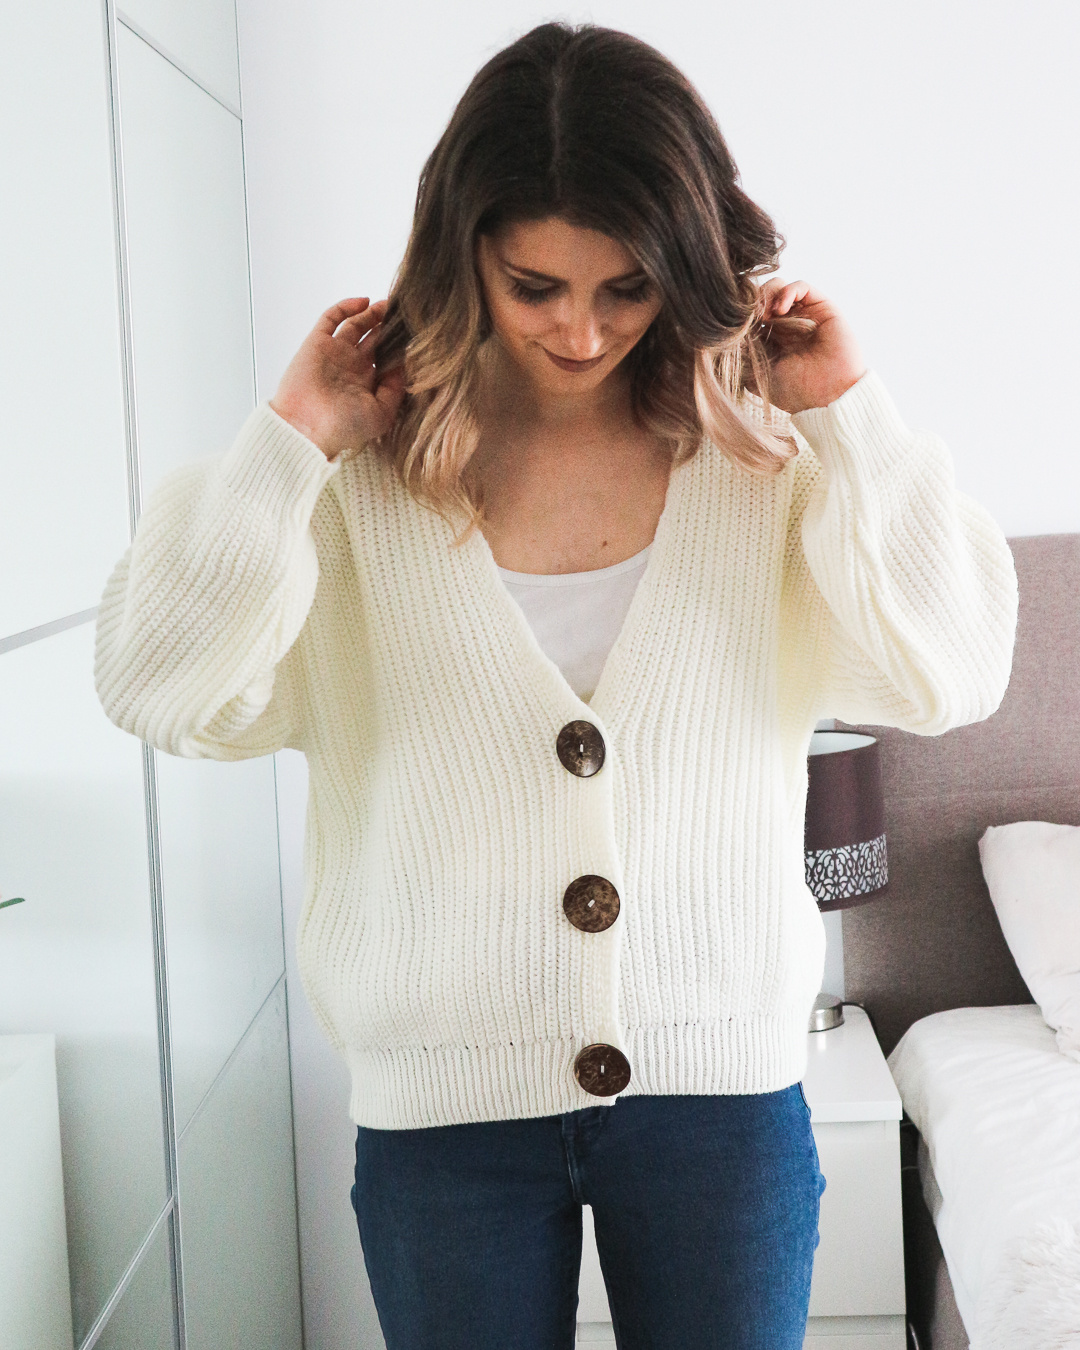 ASOS off-white cardigan with buttons